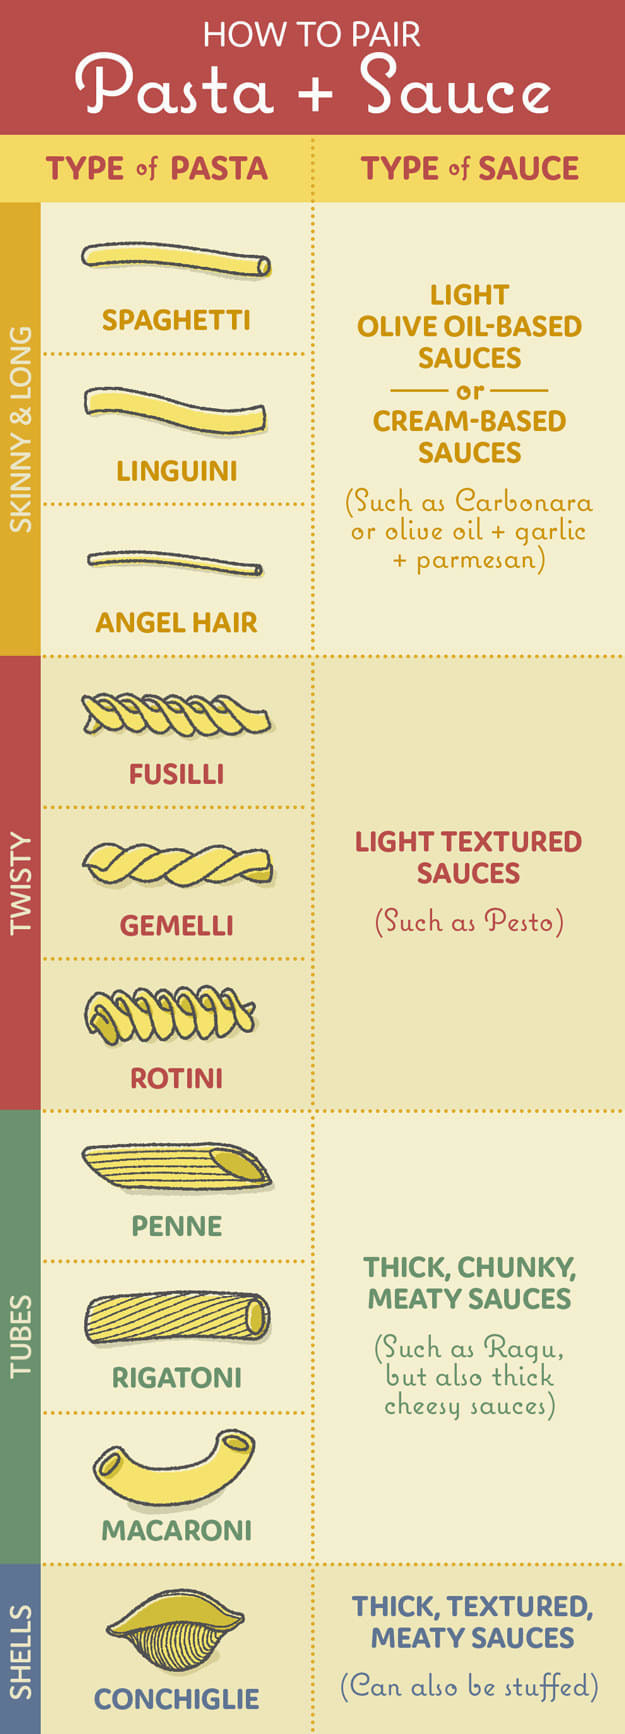 And pair the right pasta with the right sauce for the best ~texture combos~.